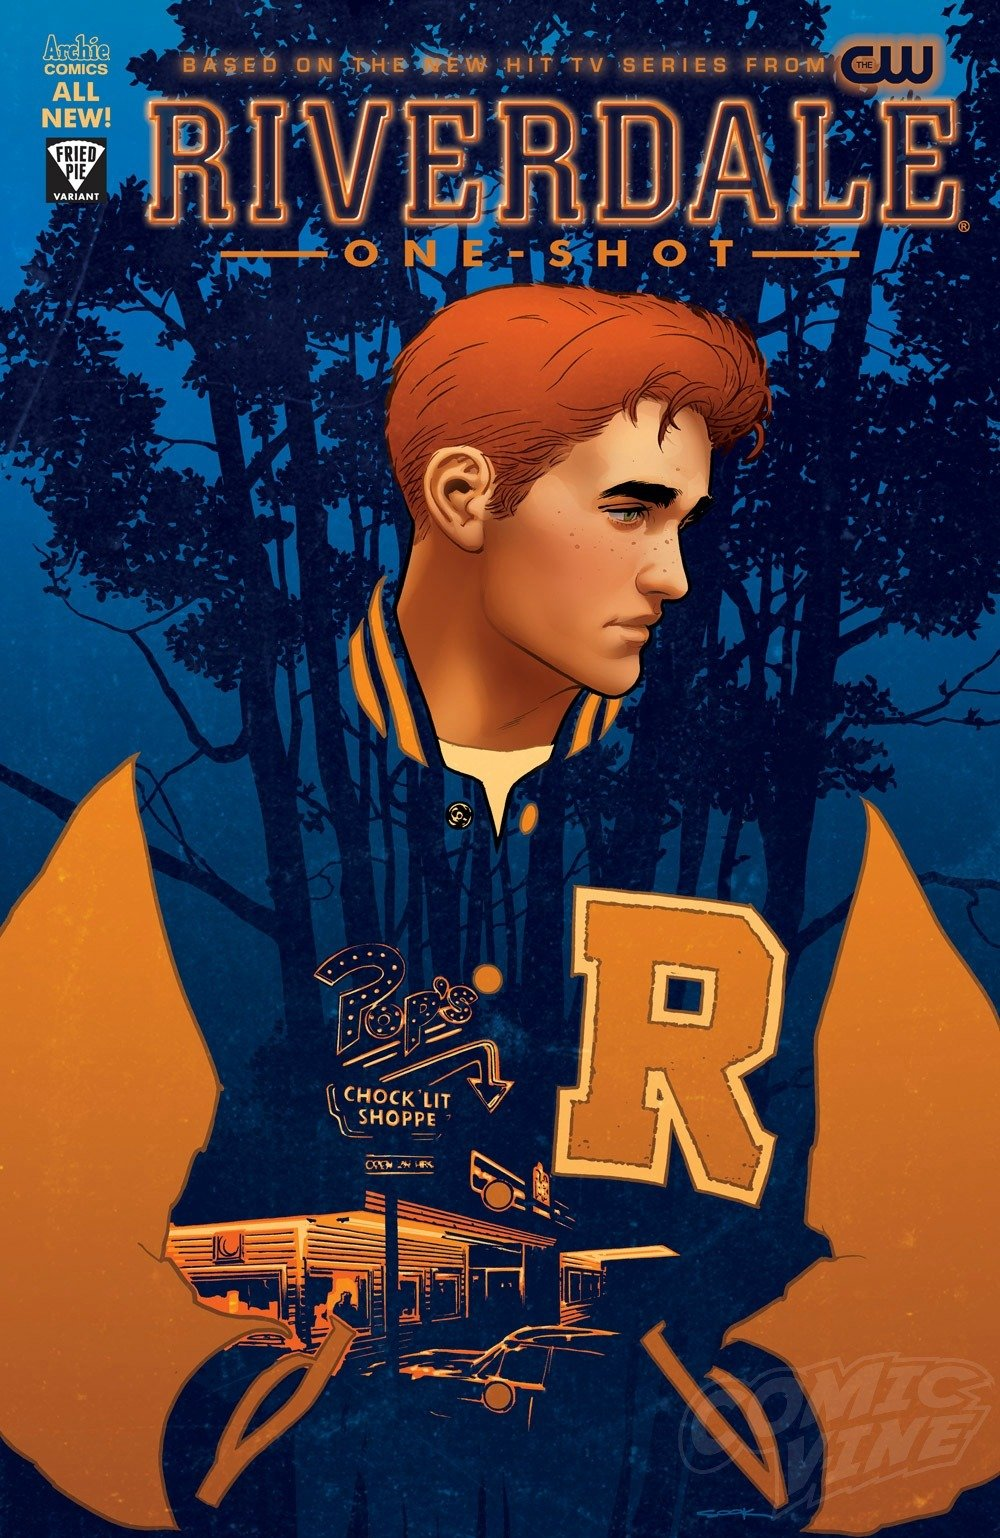 New Riverdale Trailer Debuts Variant Cover For Tie In